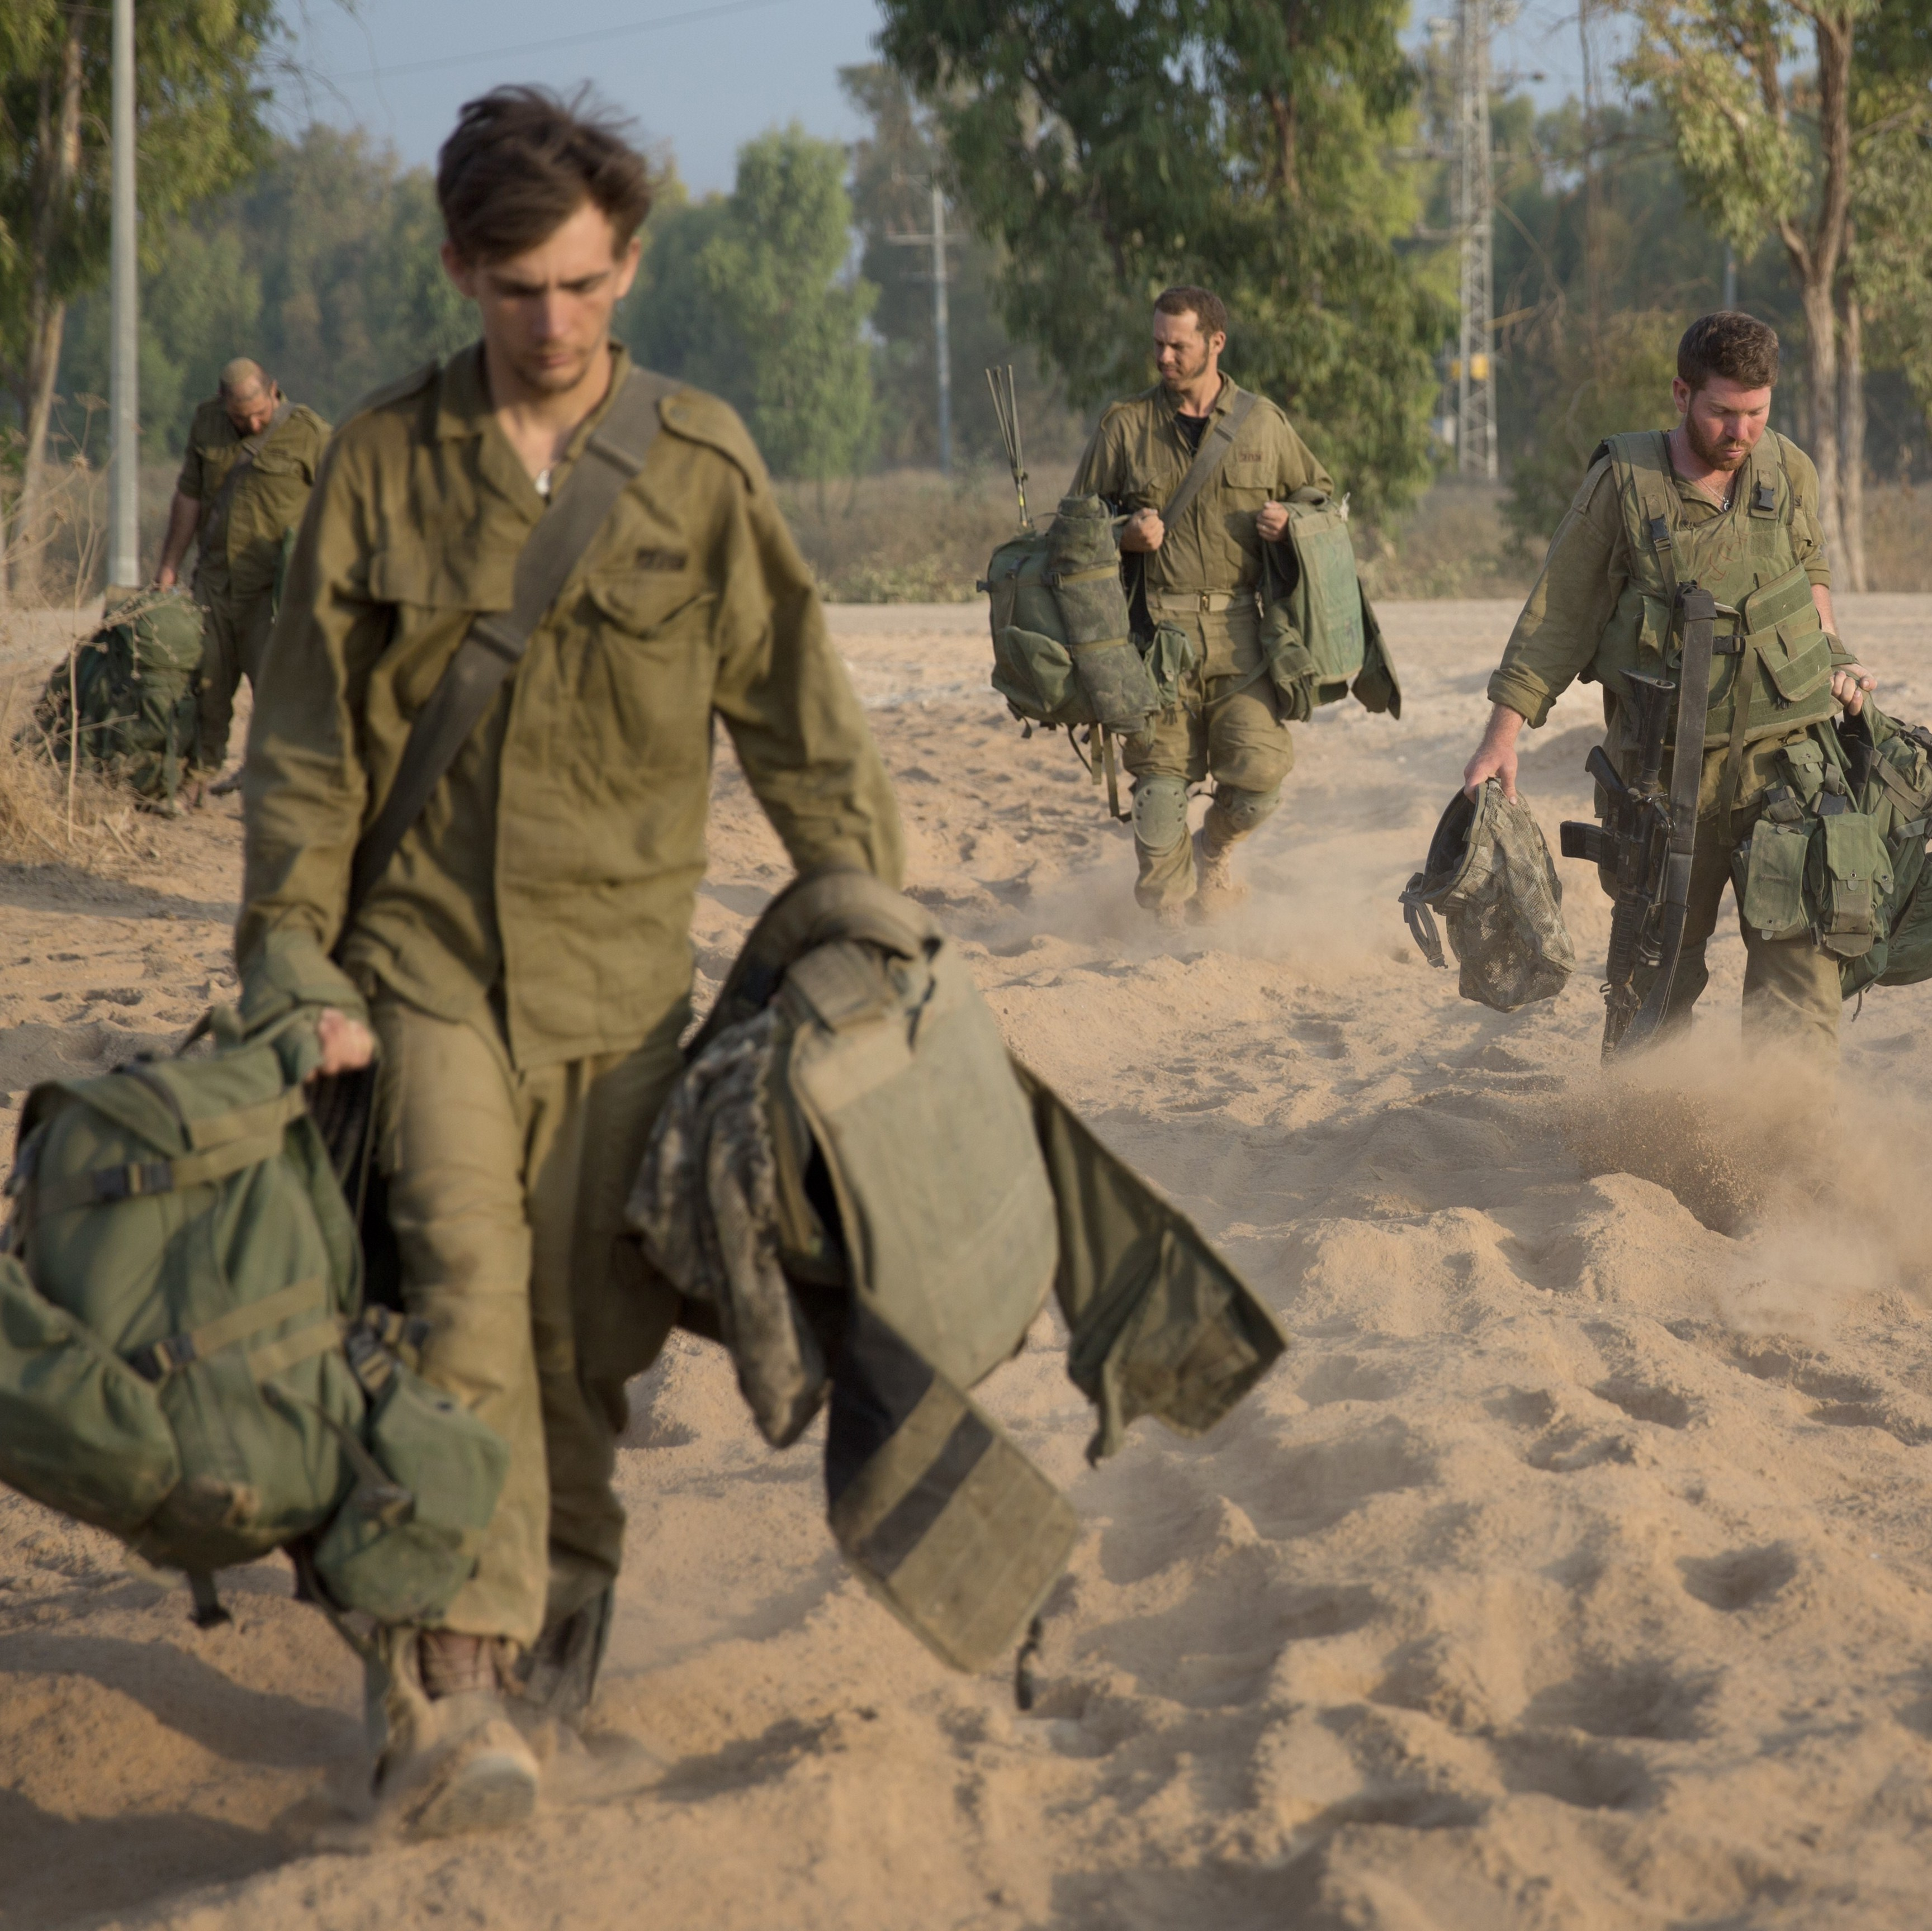 Israeli soldiers return from the Gaza Strip at an army deployment area near Israel's border with the besieged Palestinian territory on July 23, 2014, as the conflict entered its third week with neither side showing any sign of willingness to pull back.